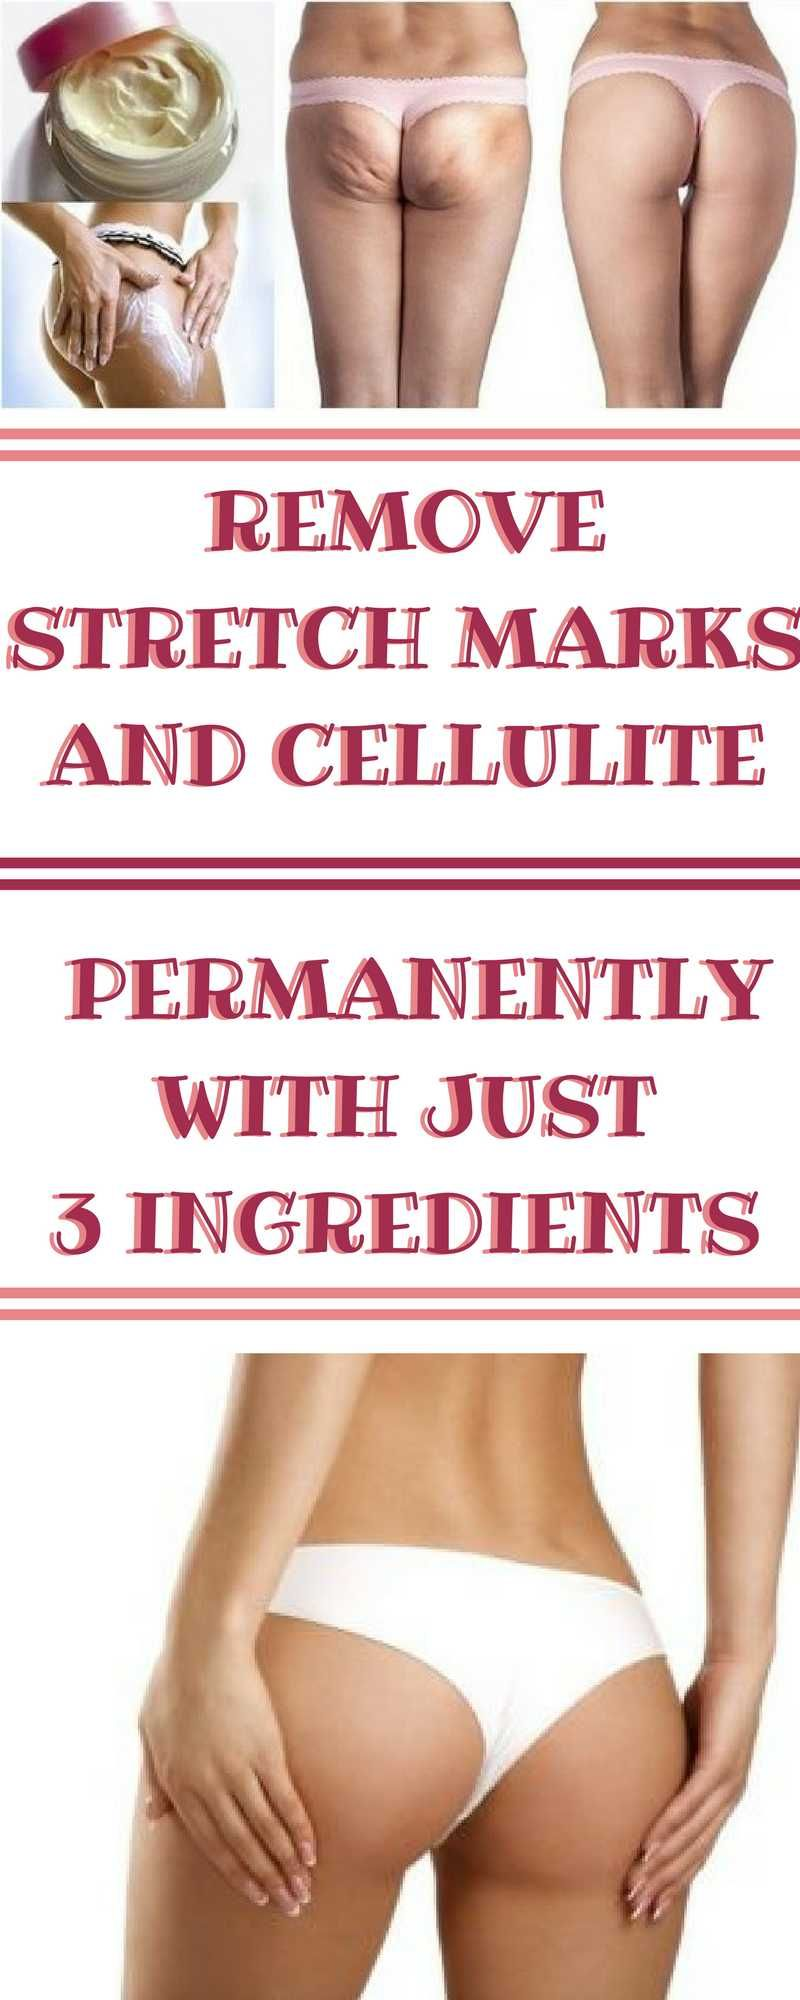 REMOVE STRETCH MARKS AND CELLULITE PERMANENTLY WITH JUST